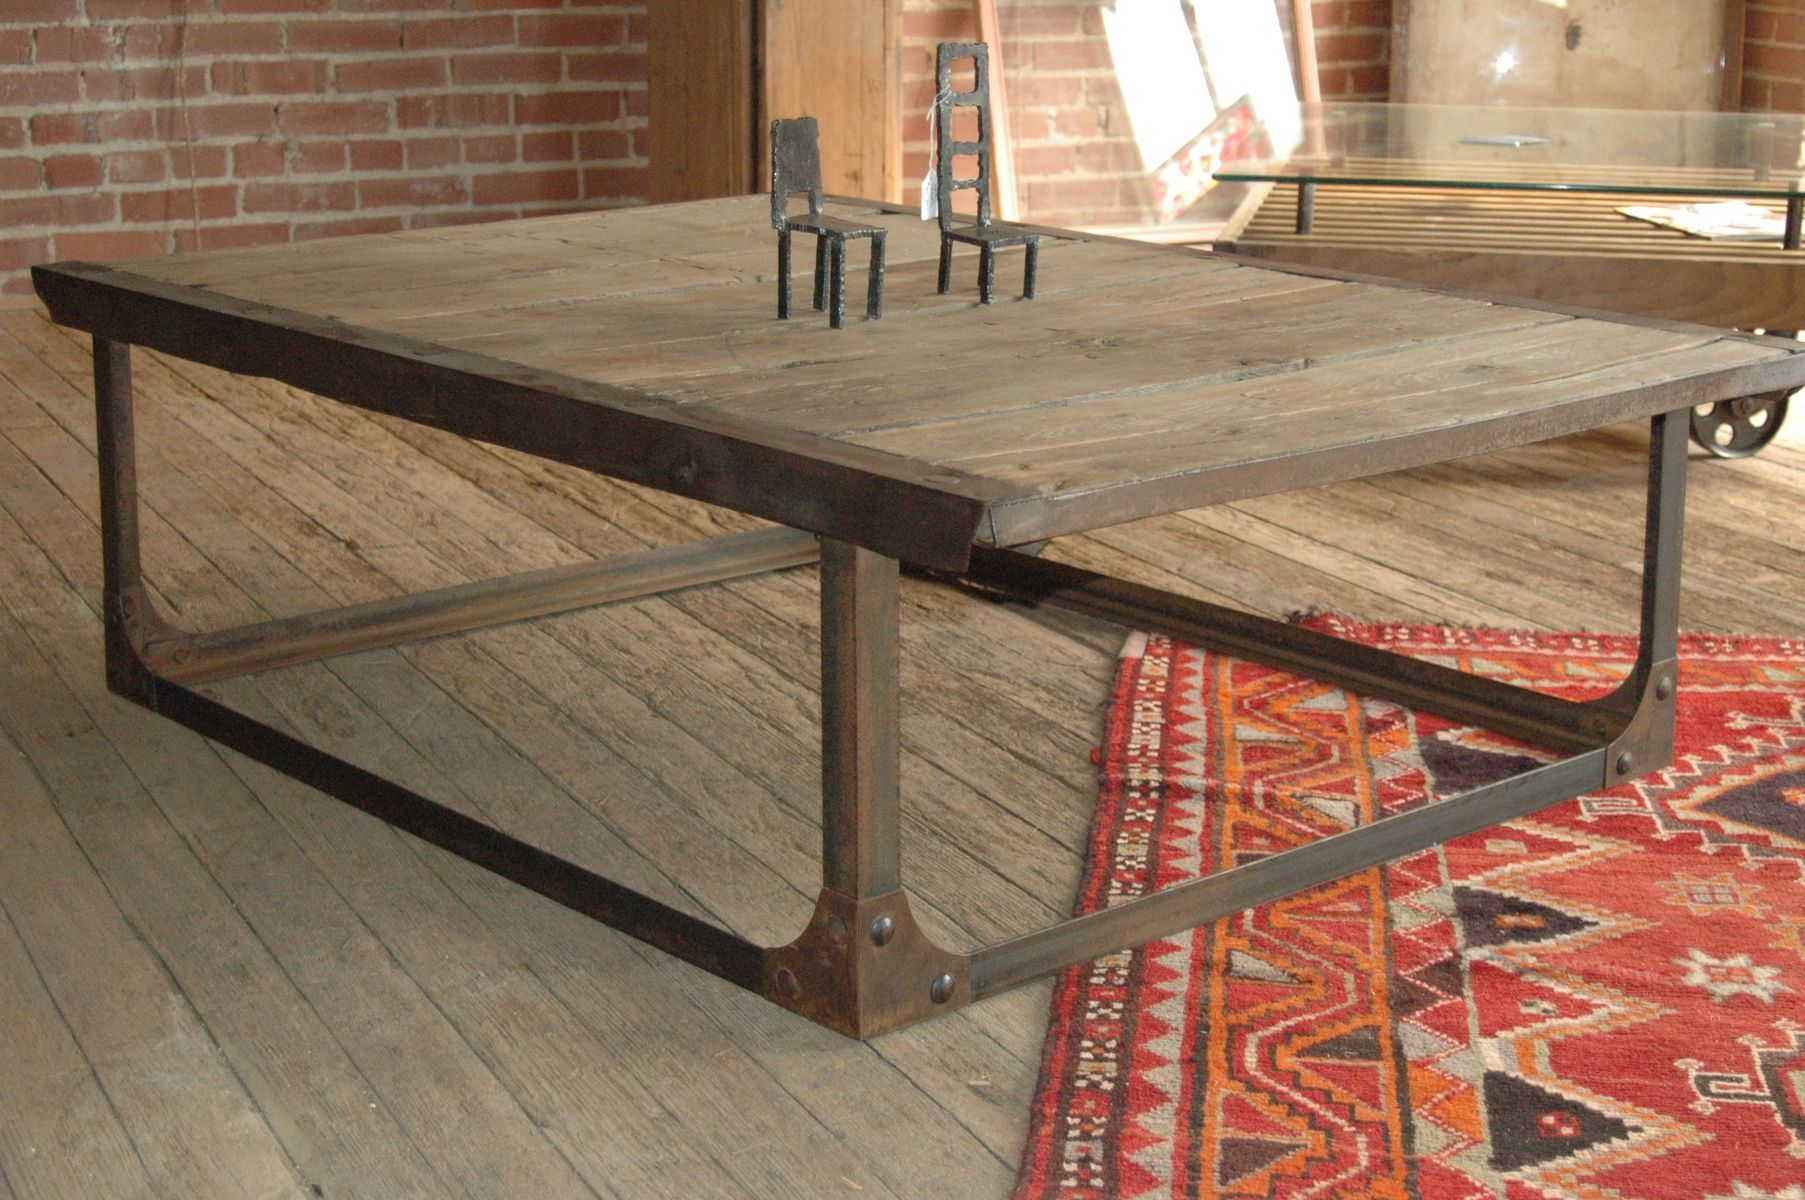 Hand Made Industrial Coffee Table by Tecklenburg Design